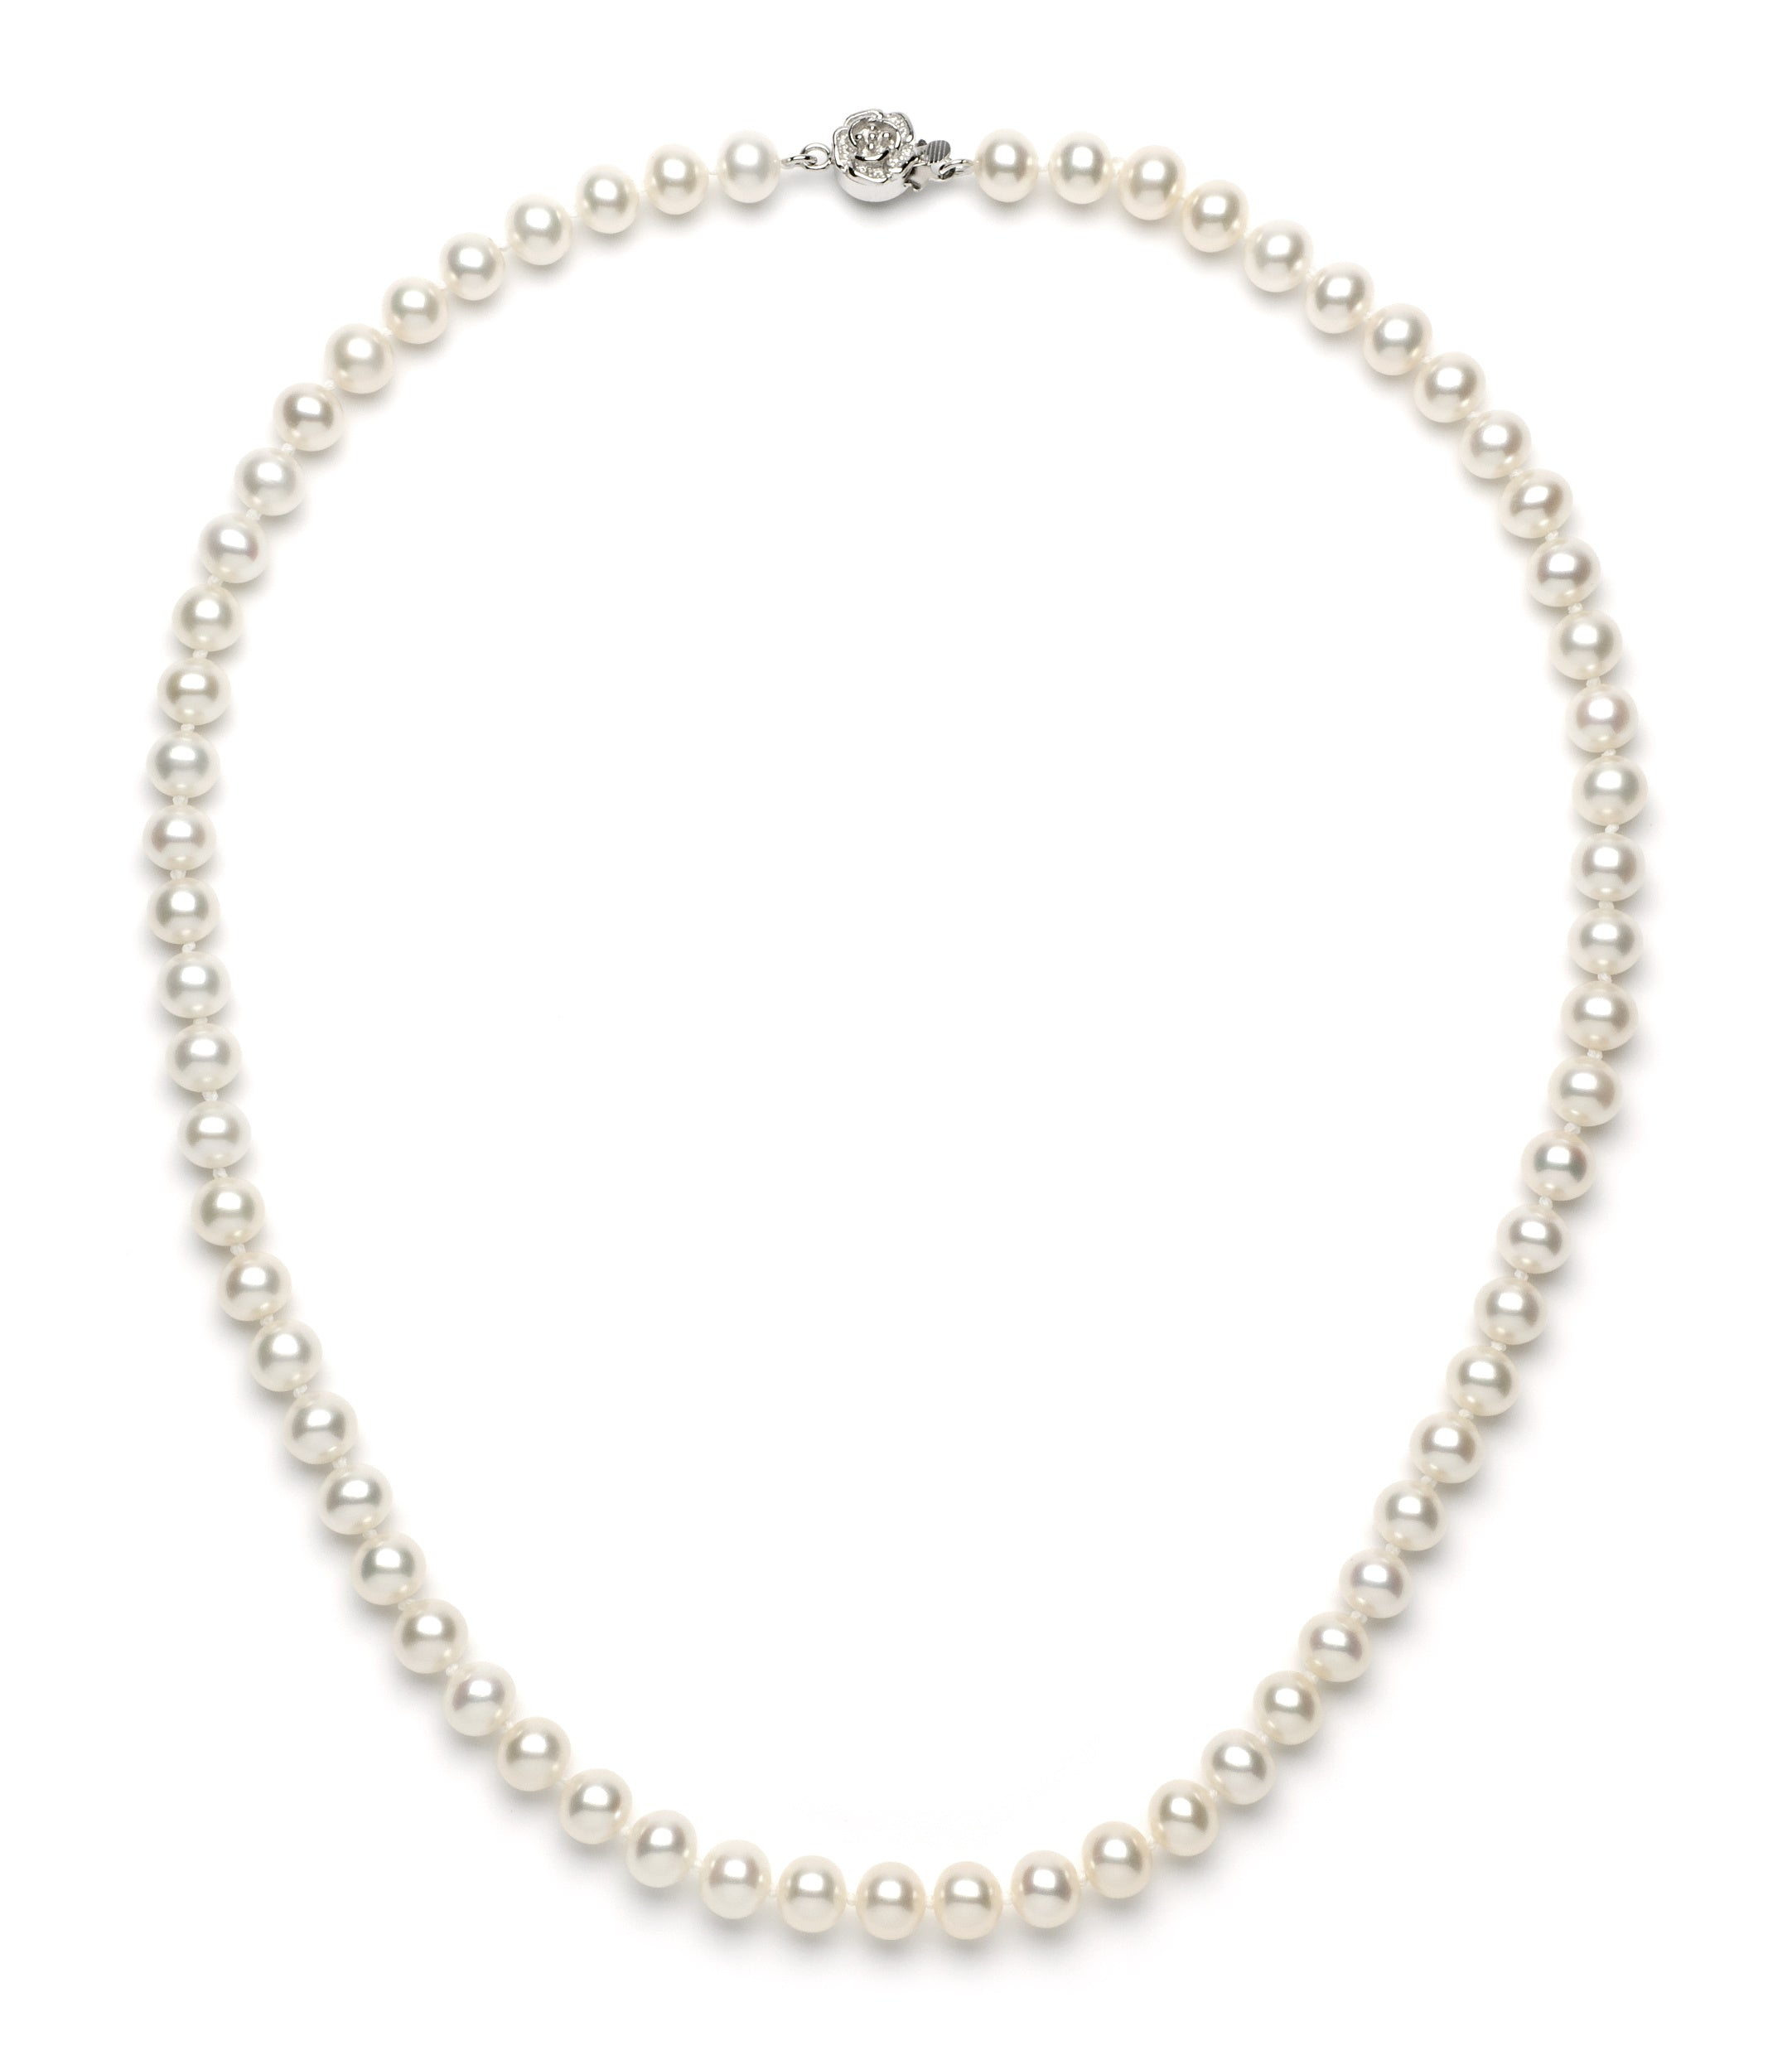 Necklace/Bracelet Set 6.0-7.0 mm White Freshwater Pearls